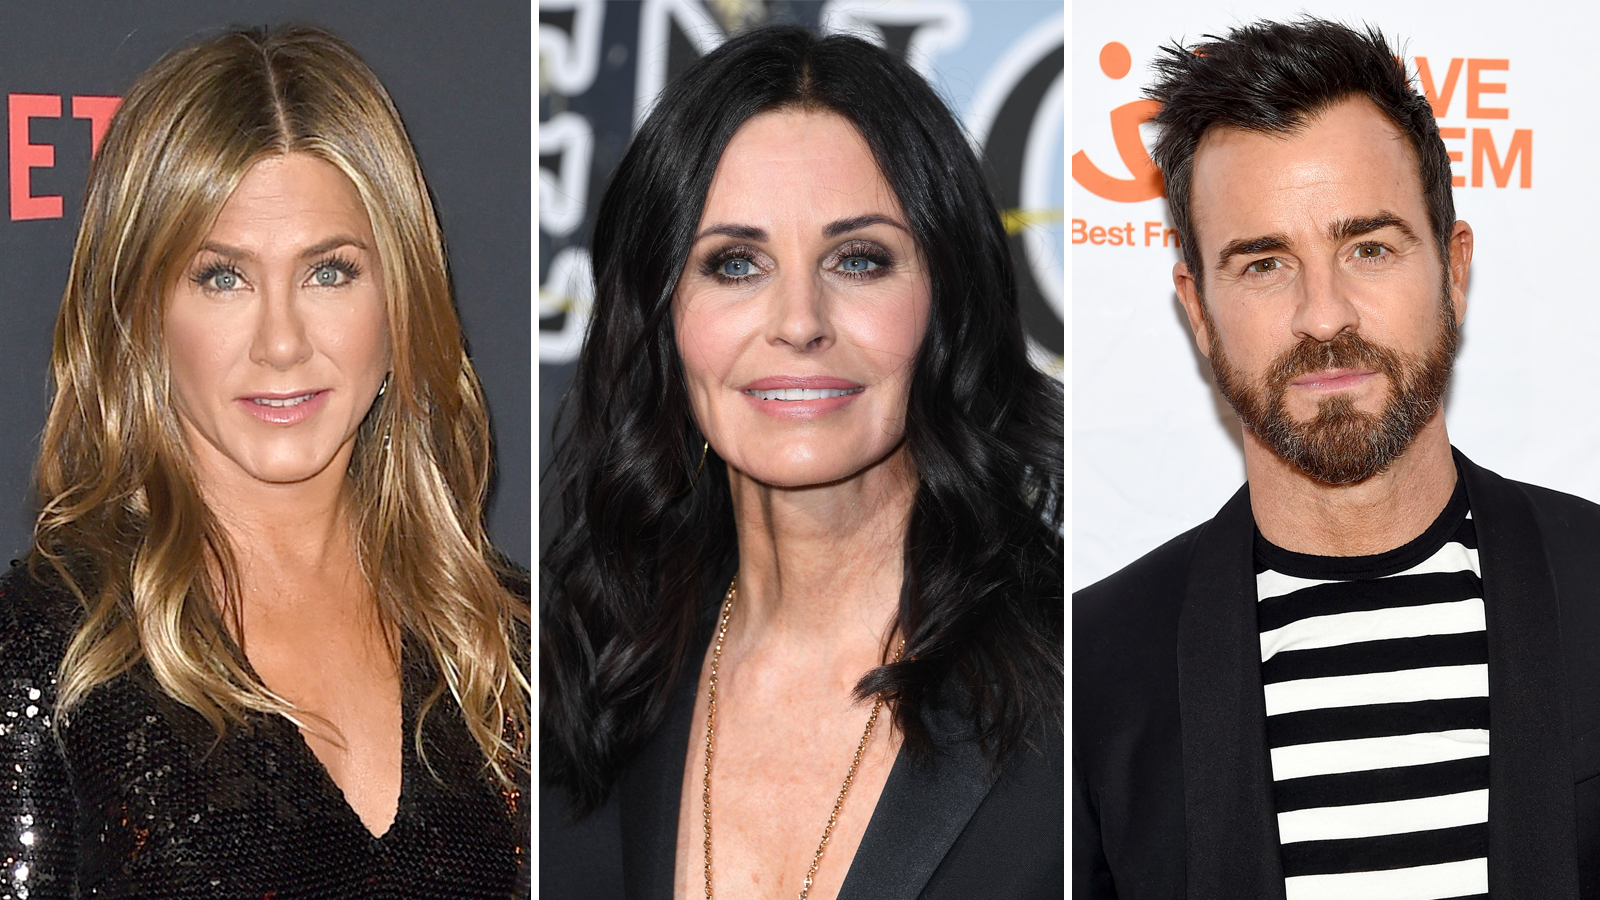 Jennifer Aniston's BFF Courteney Cox Shows Love on Ex-Husband Justin Theroux's Instagram